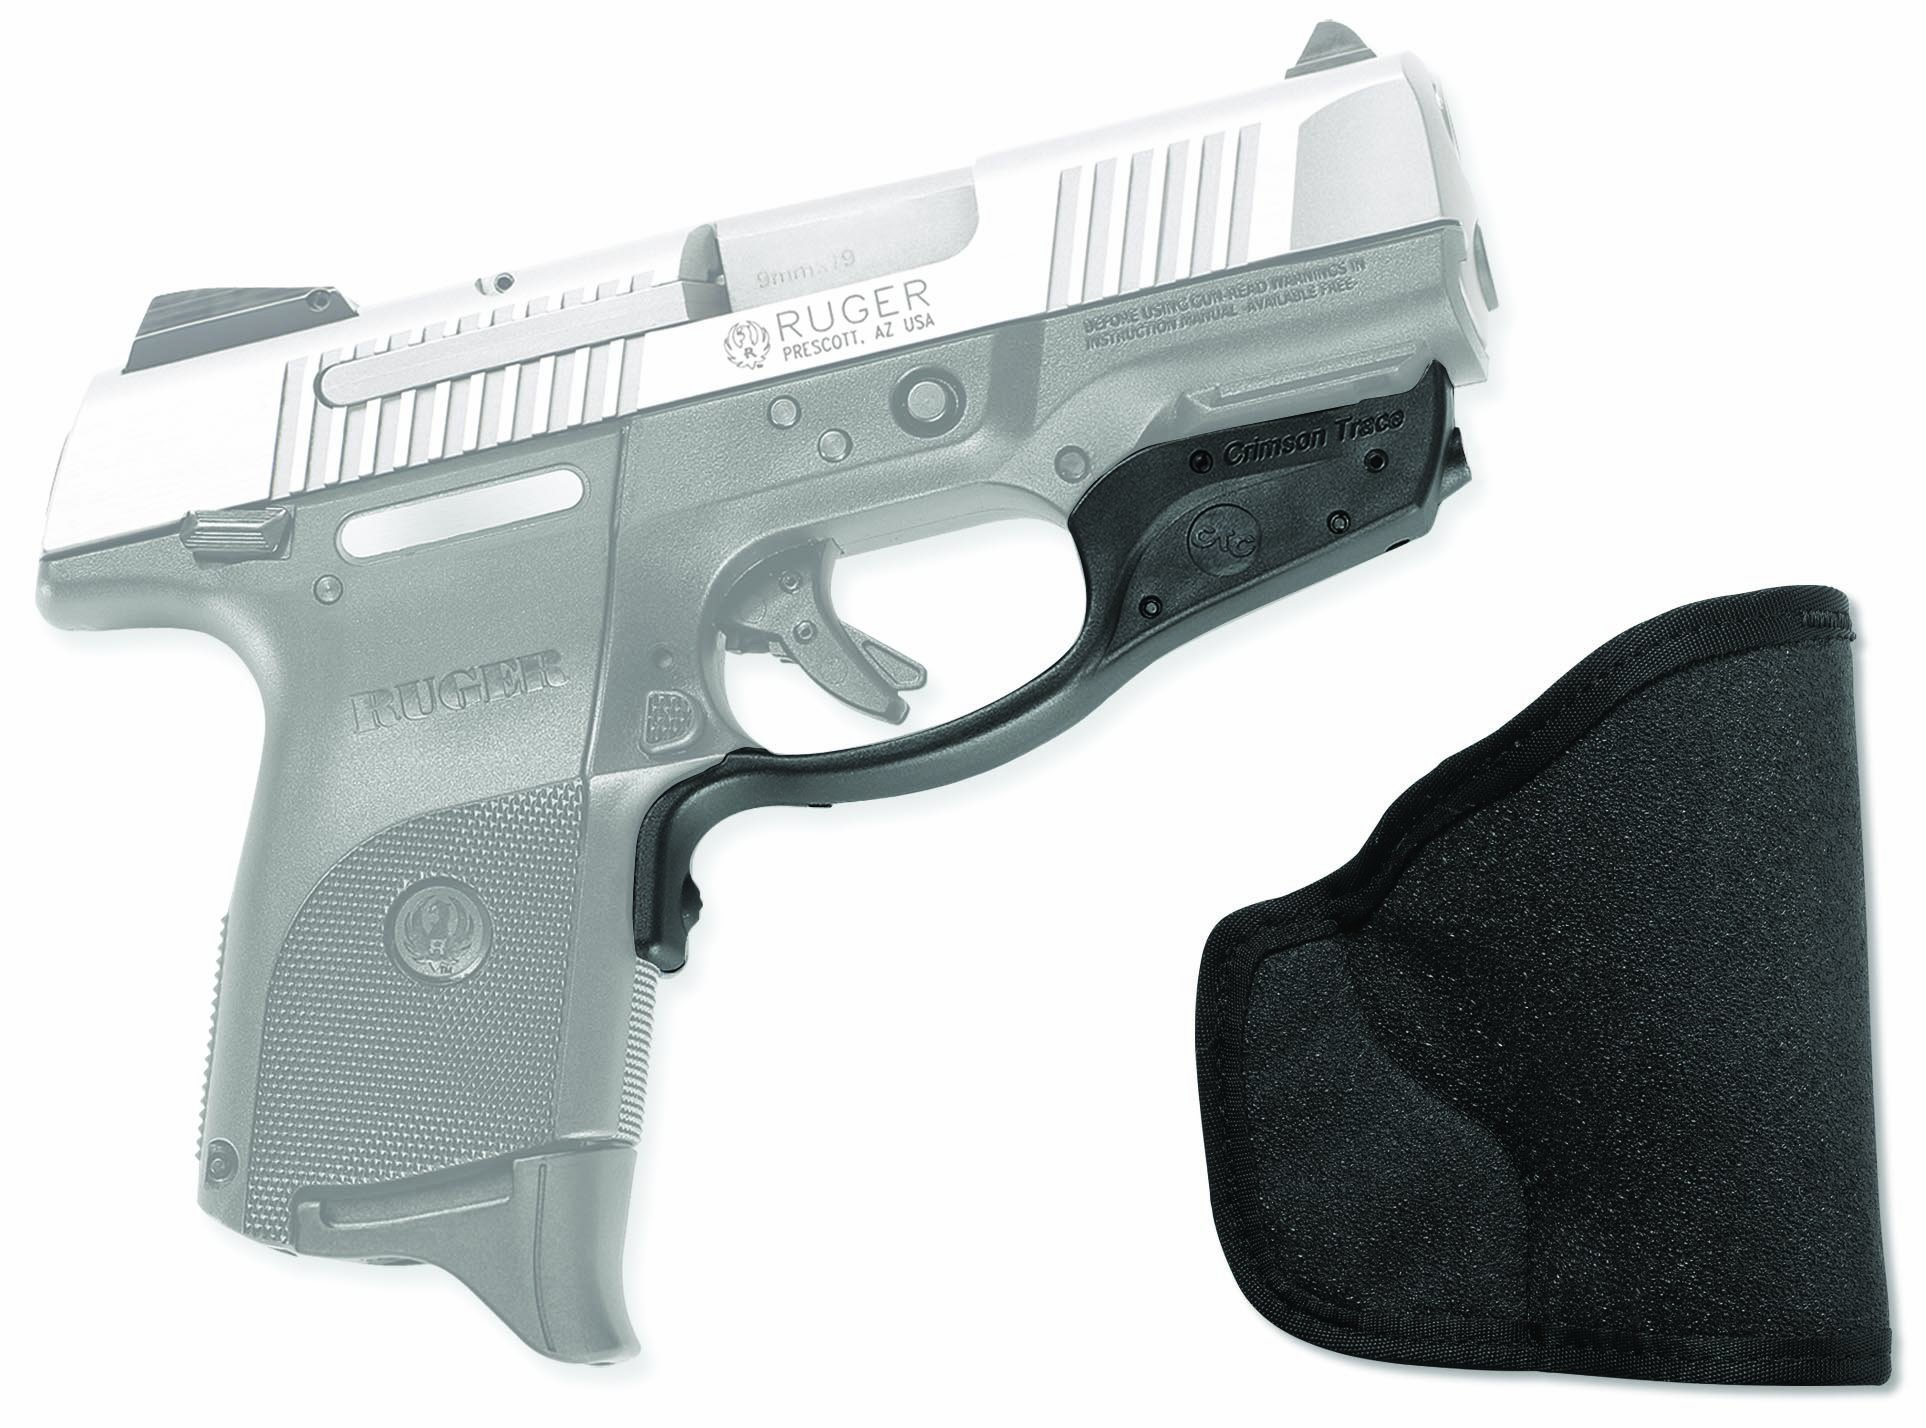 Crimson Trace LG-449 Laserguard Red Laser Sight for Ruger SR9c Pistols with Holster by Crimson Trace (Image #1)